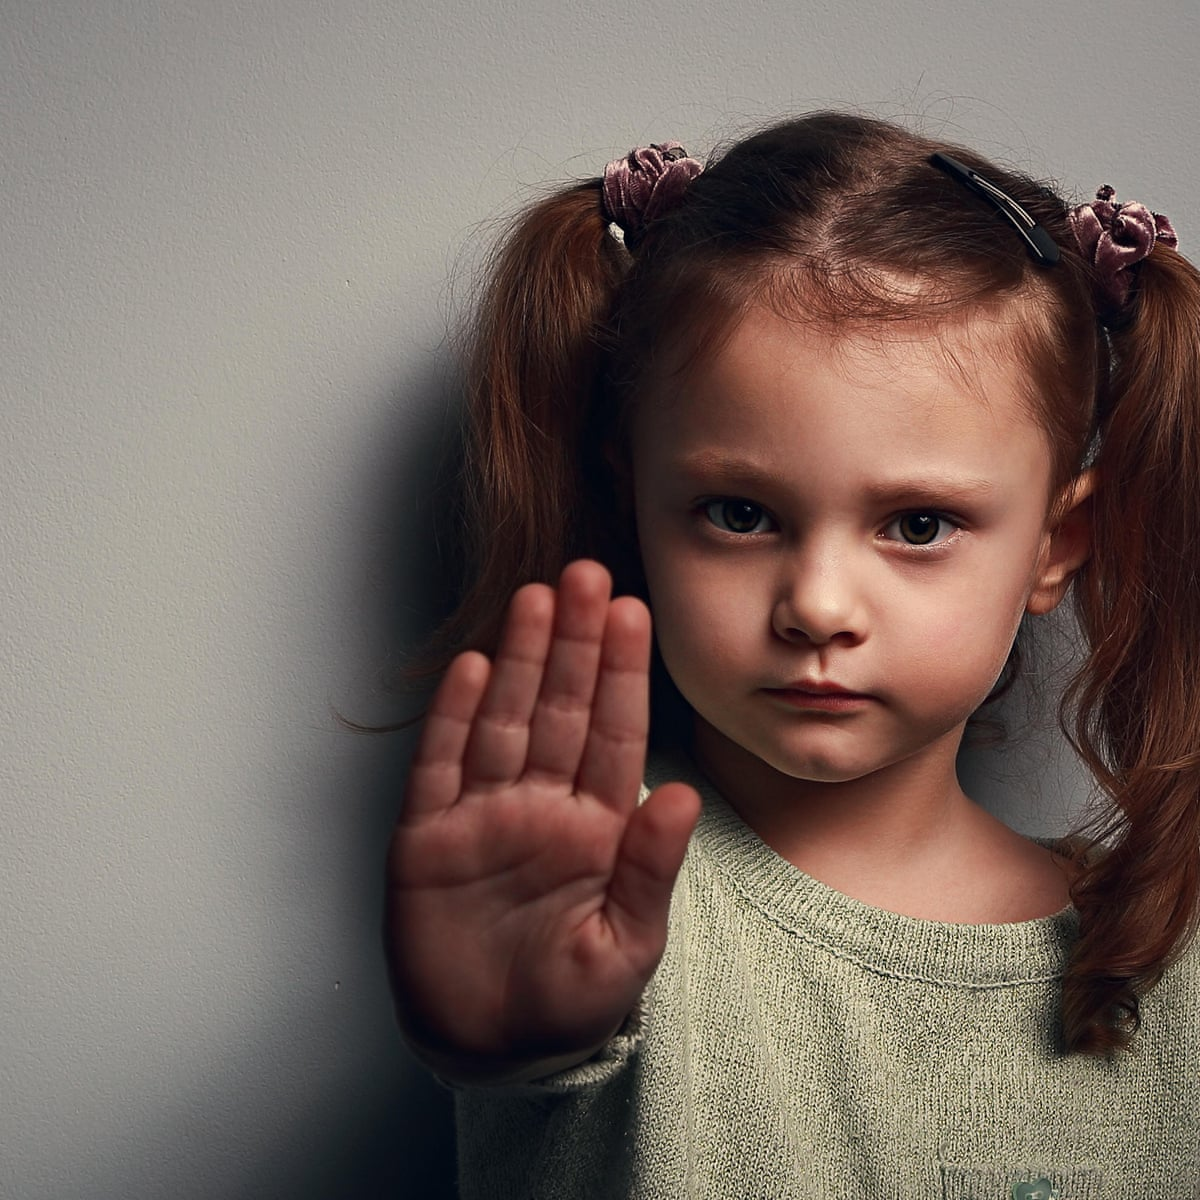 How to talk to children (even if you don't have any) | Family | The Guardian